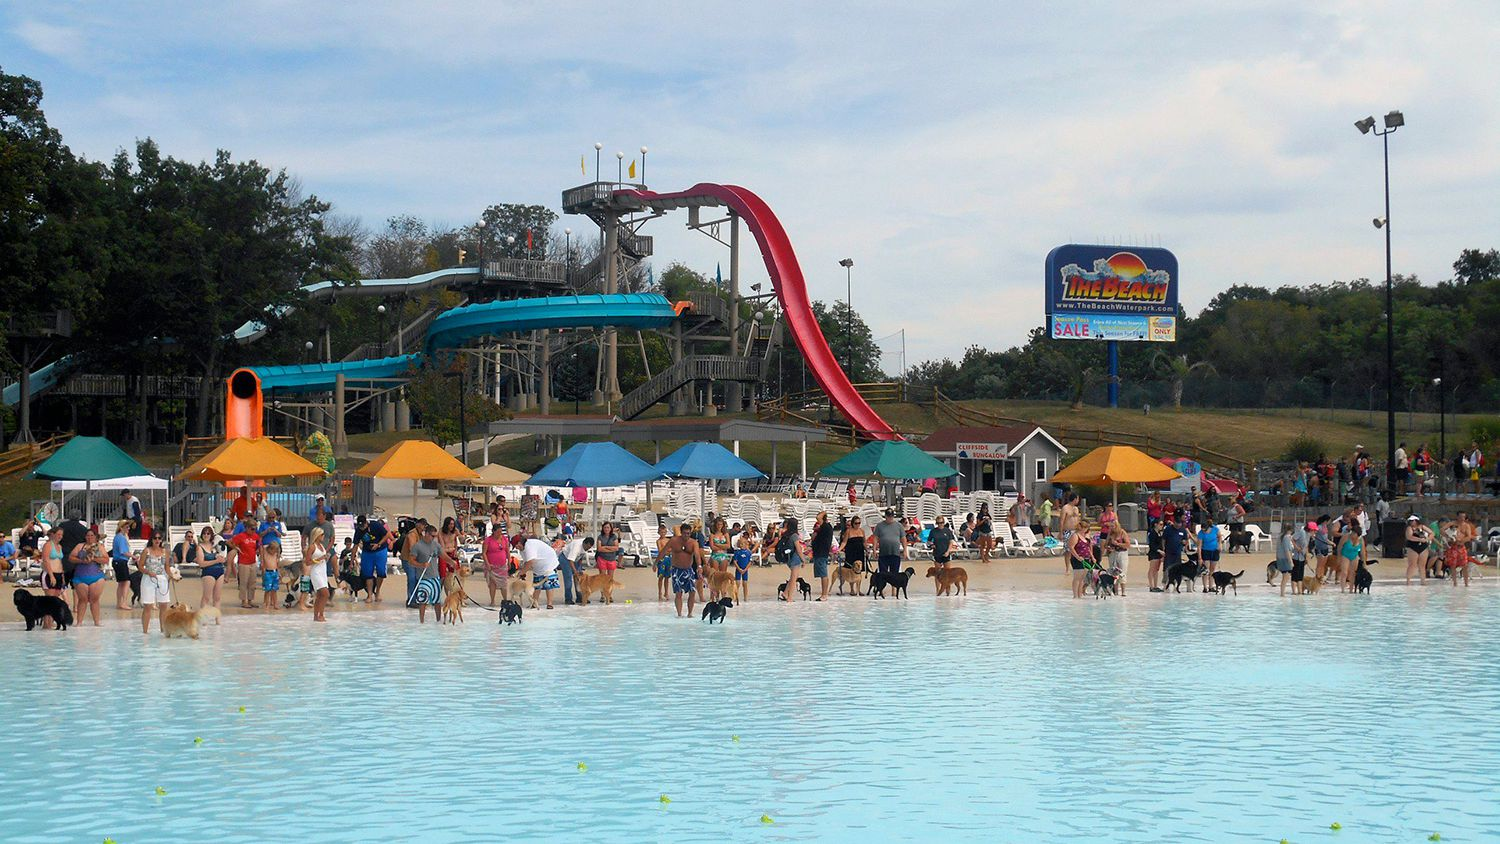 Ohio's Outdoor and Indoor Water Parks - Where to Get Wet